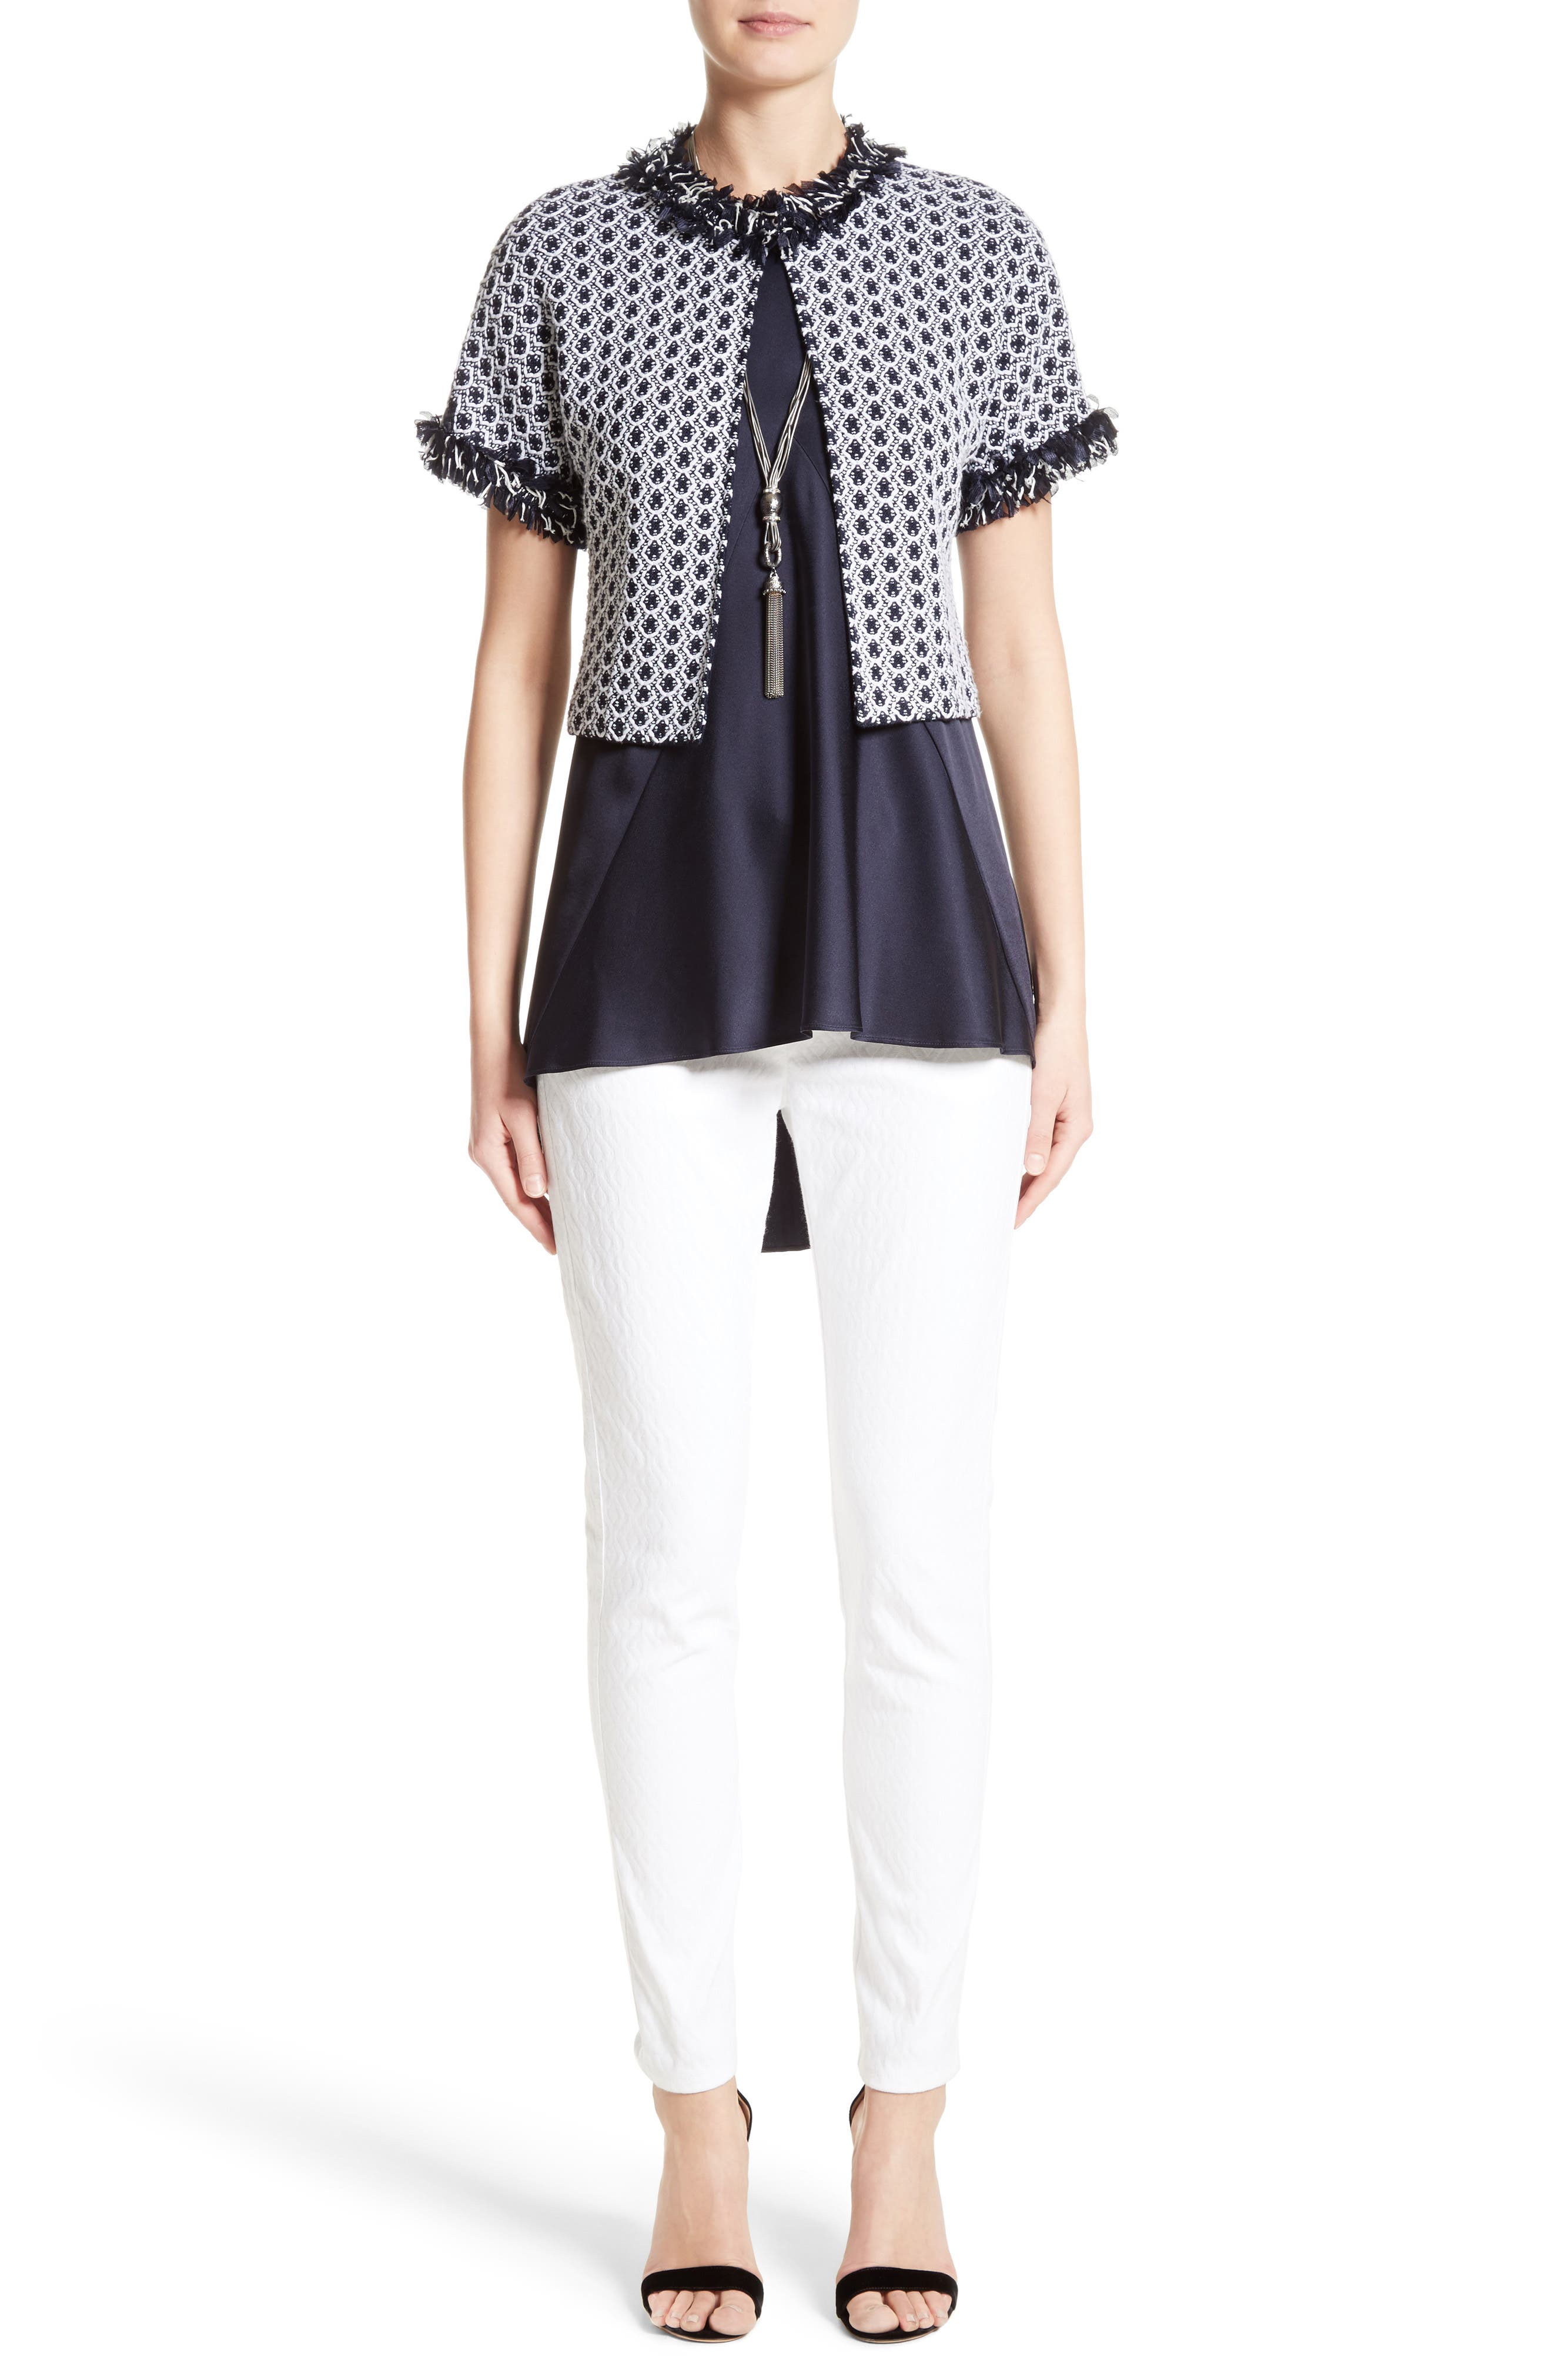 St. John Collection Jacket, Top & Jeans Outfit with Accessories